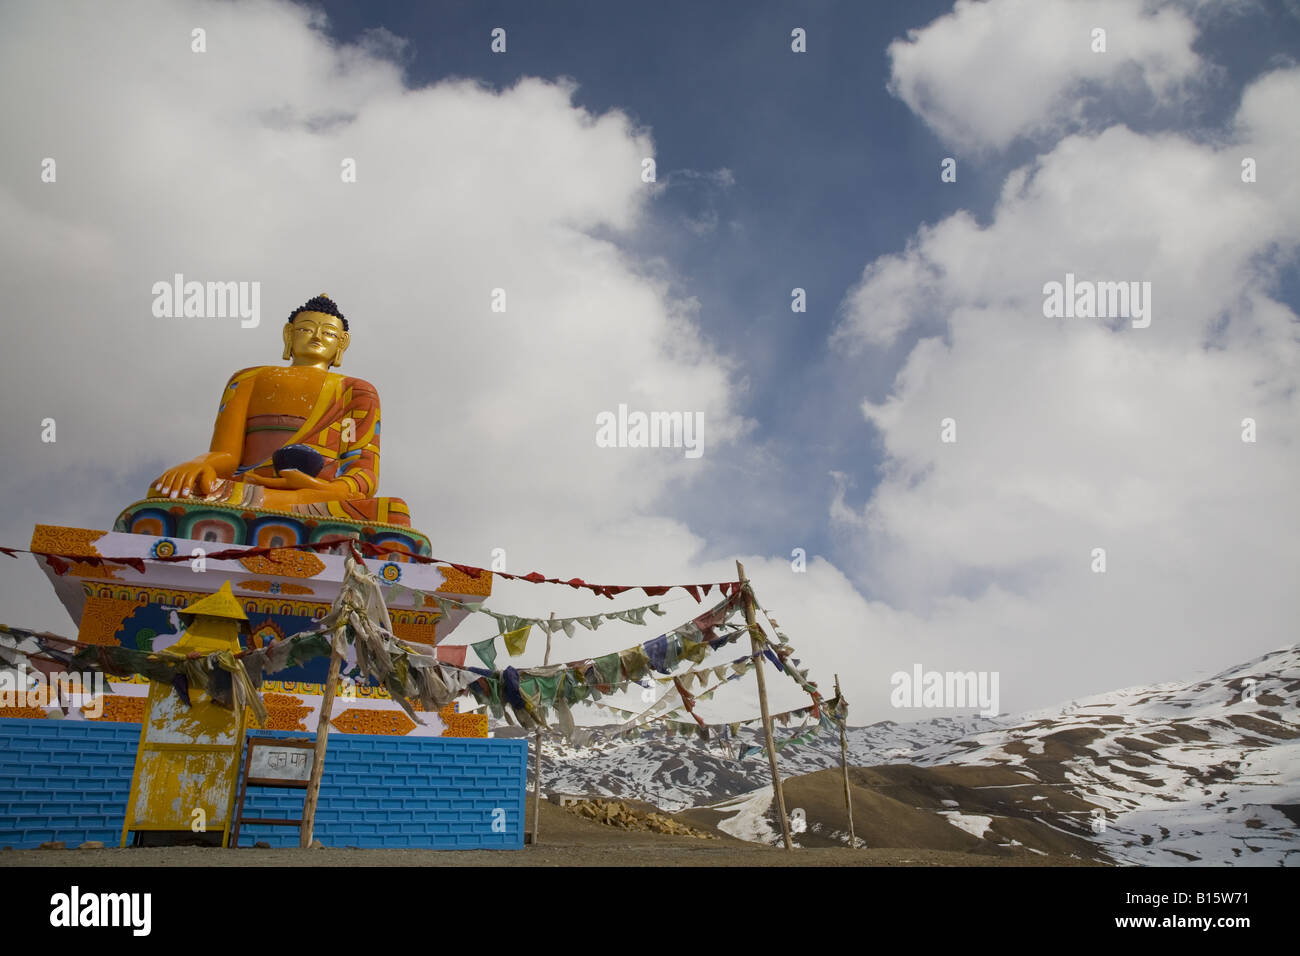 Large statue of Gautam Buddha at Langza village, Spiti, Himachal Pradesh, India. - Stock Image